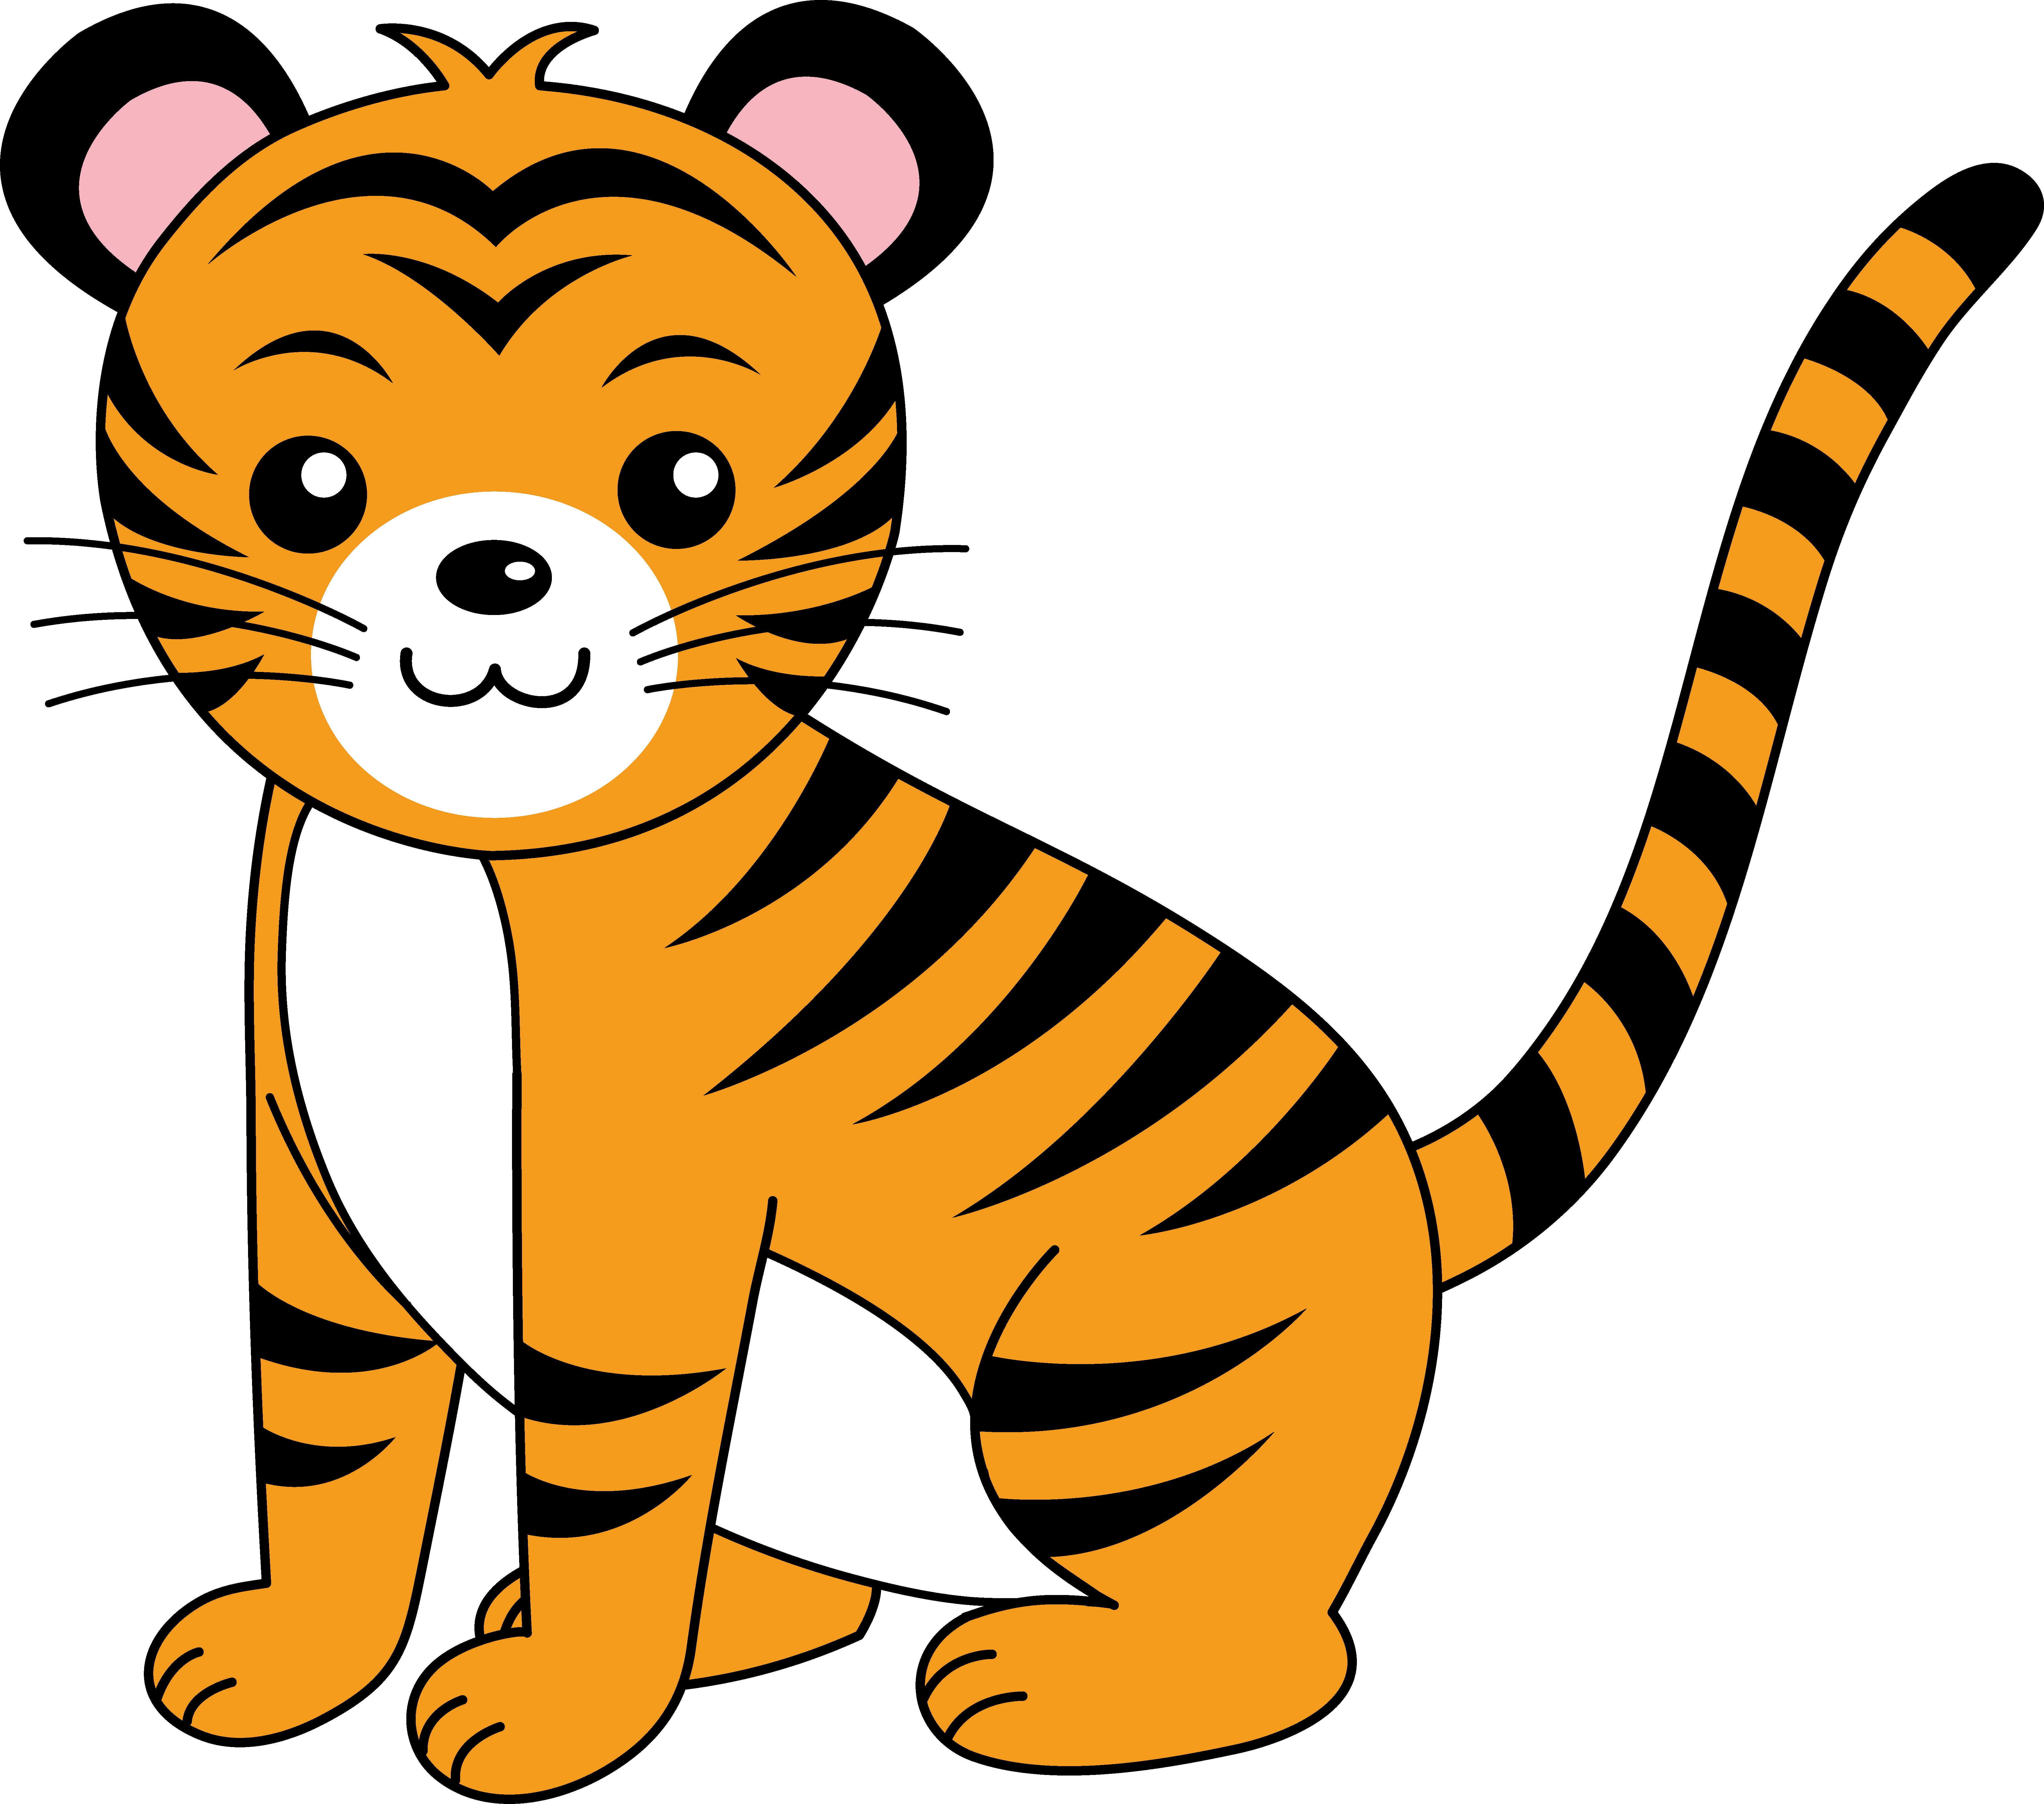 Cute Orange Tiger Cub - Free Clip Art-Cute Orange Tiger Cub - Free Clip Art-12